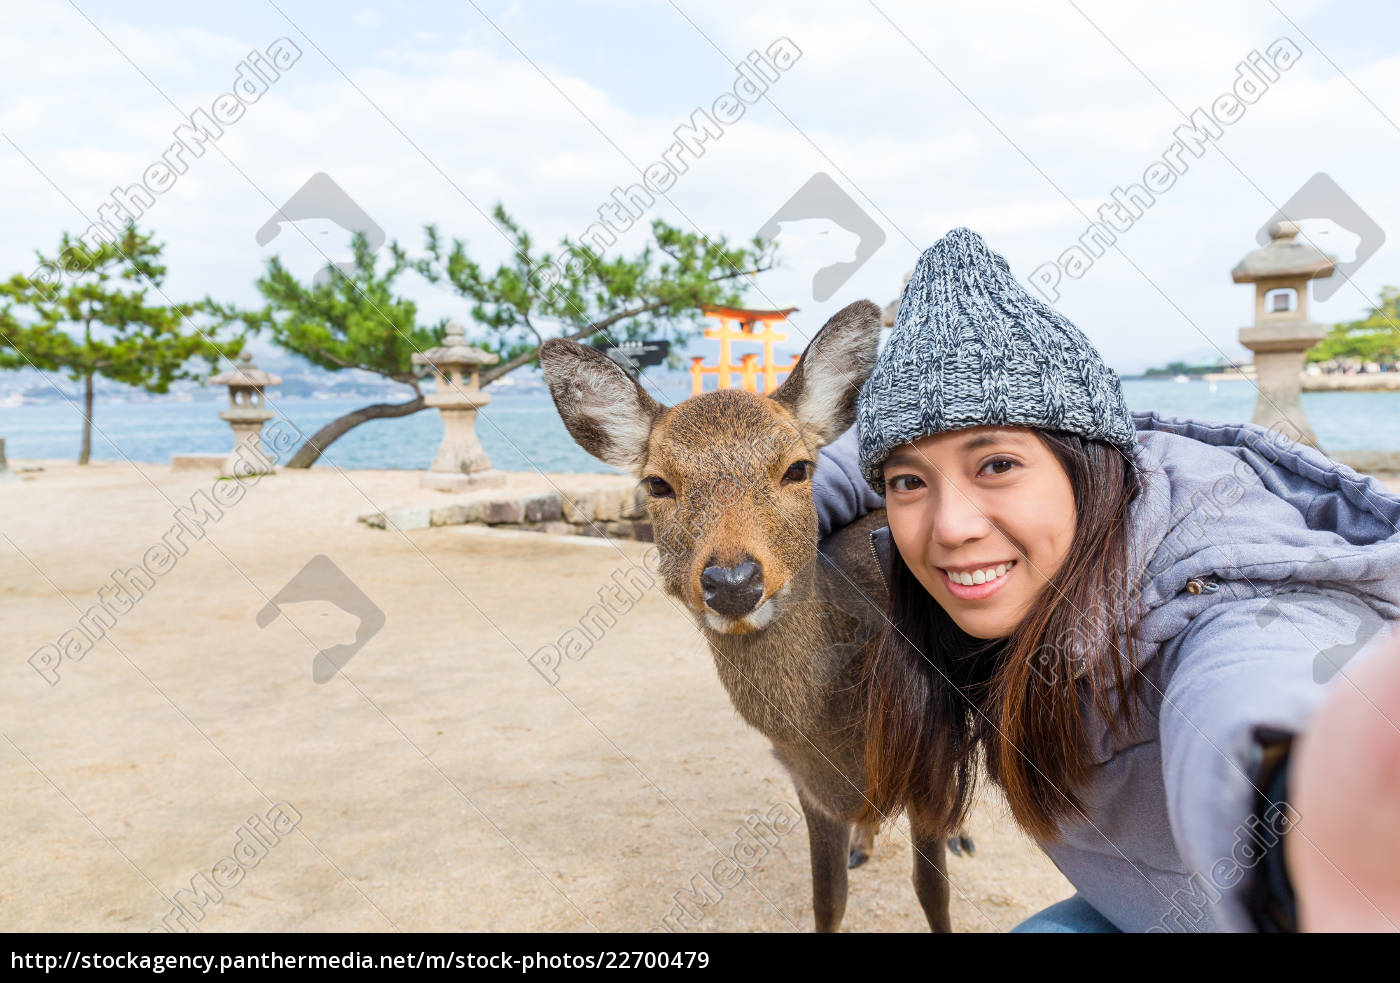 woman, taking, photo, with, deer, in - 22700479